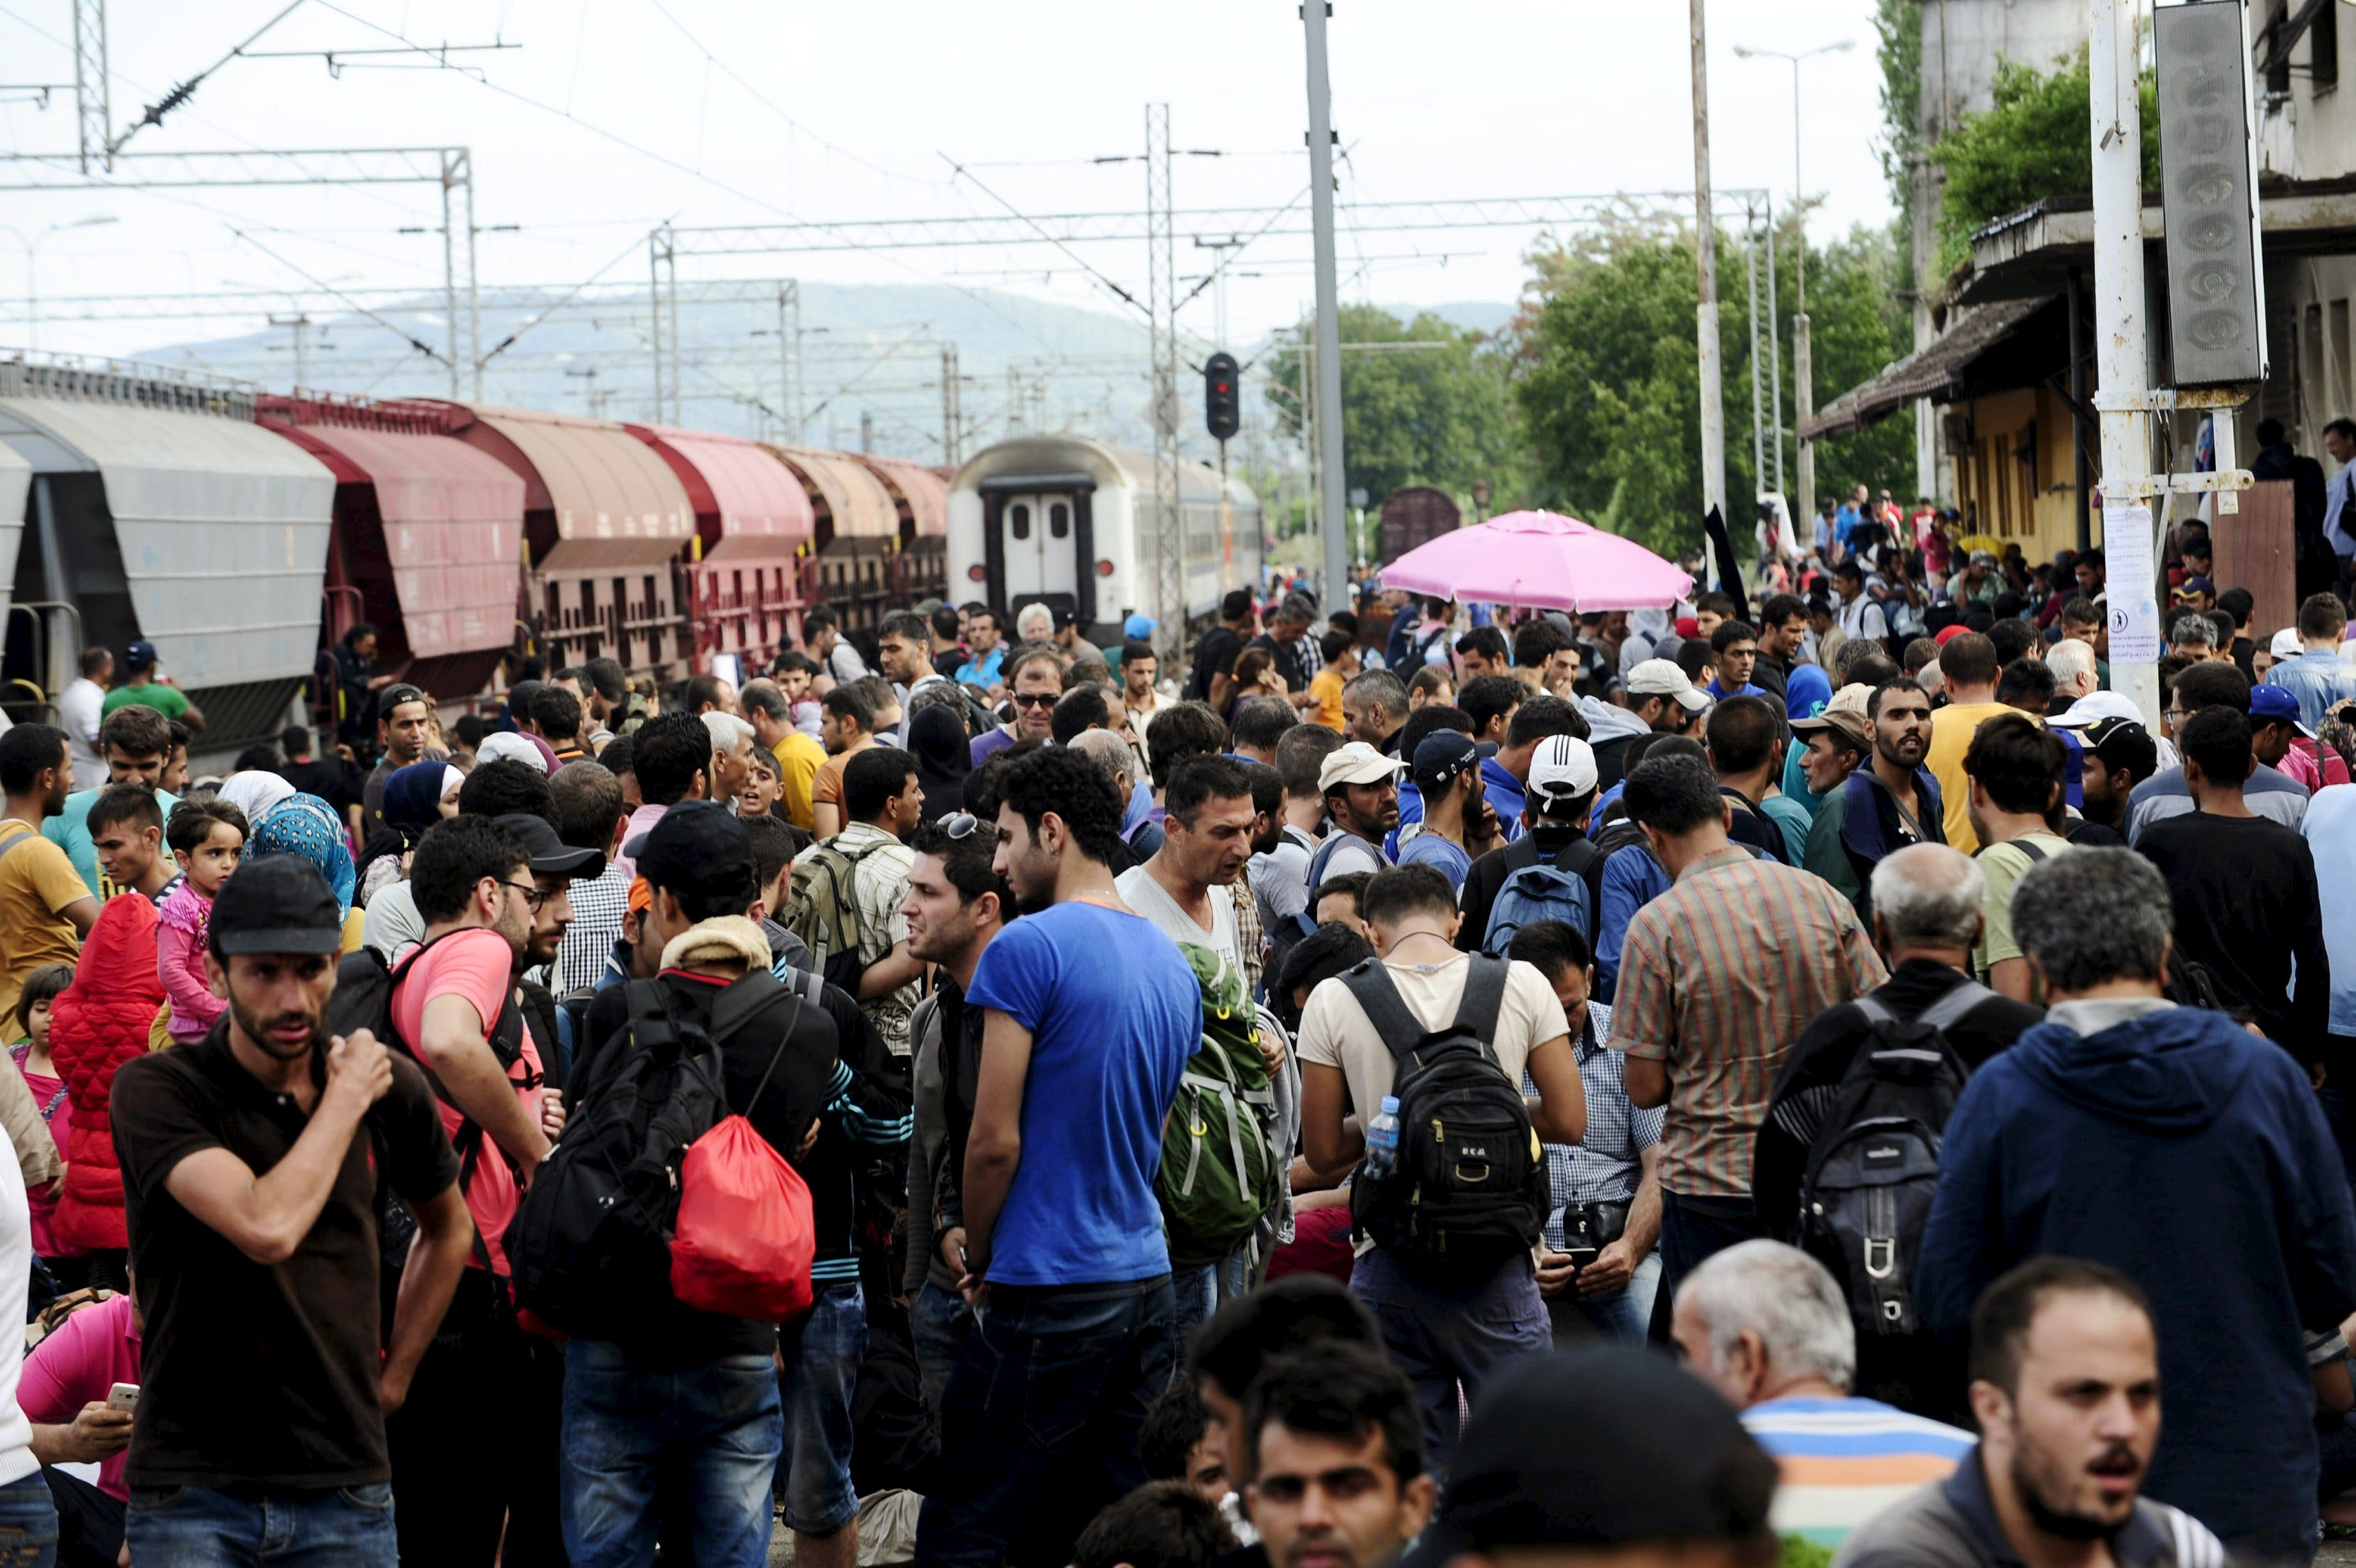 Migrants gather at Gevgelija train station in Macedonia after crossing Greece's border, Macedonia, August 22, 2015.  (Reuters)